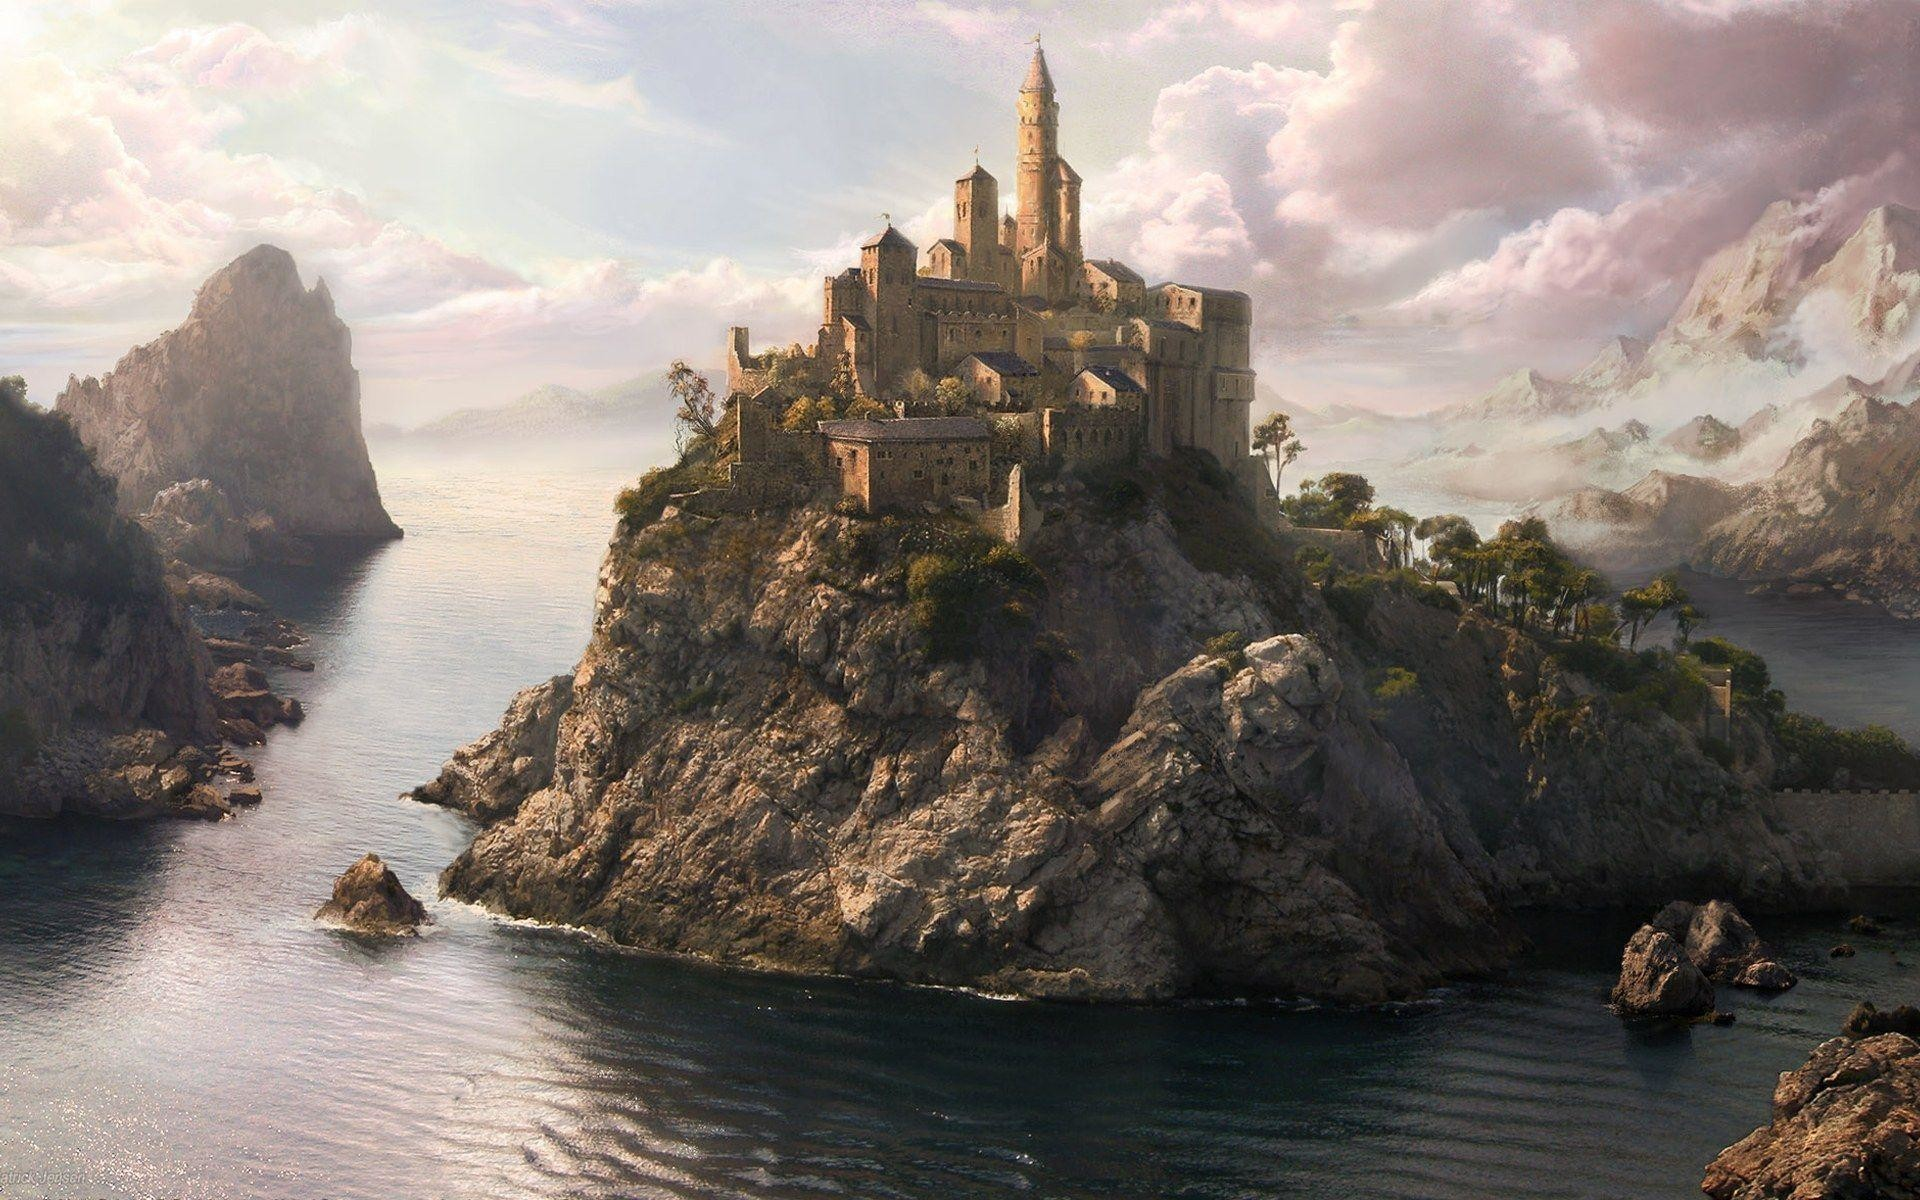 Res: 1920x1200, Awesome 3D Fantasy Art Home Island Wallpaper H #2972 Wallpaper .